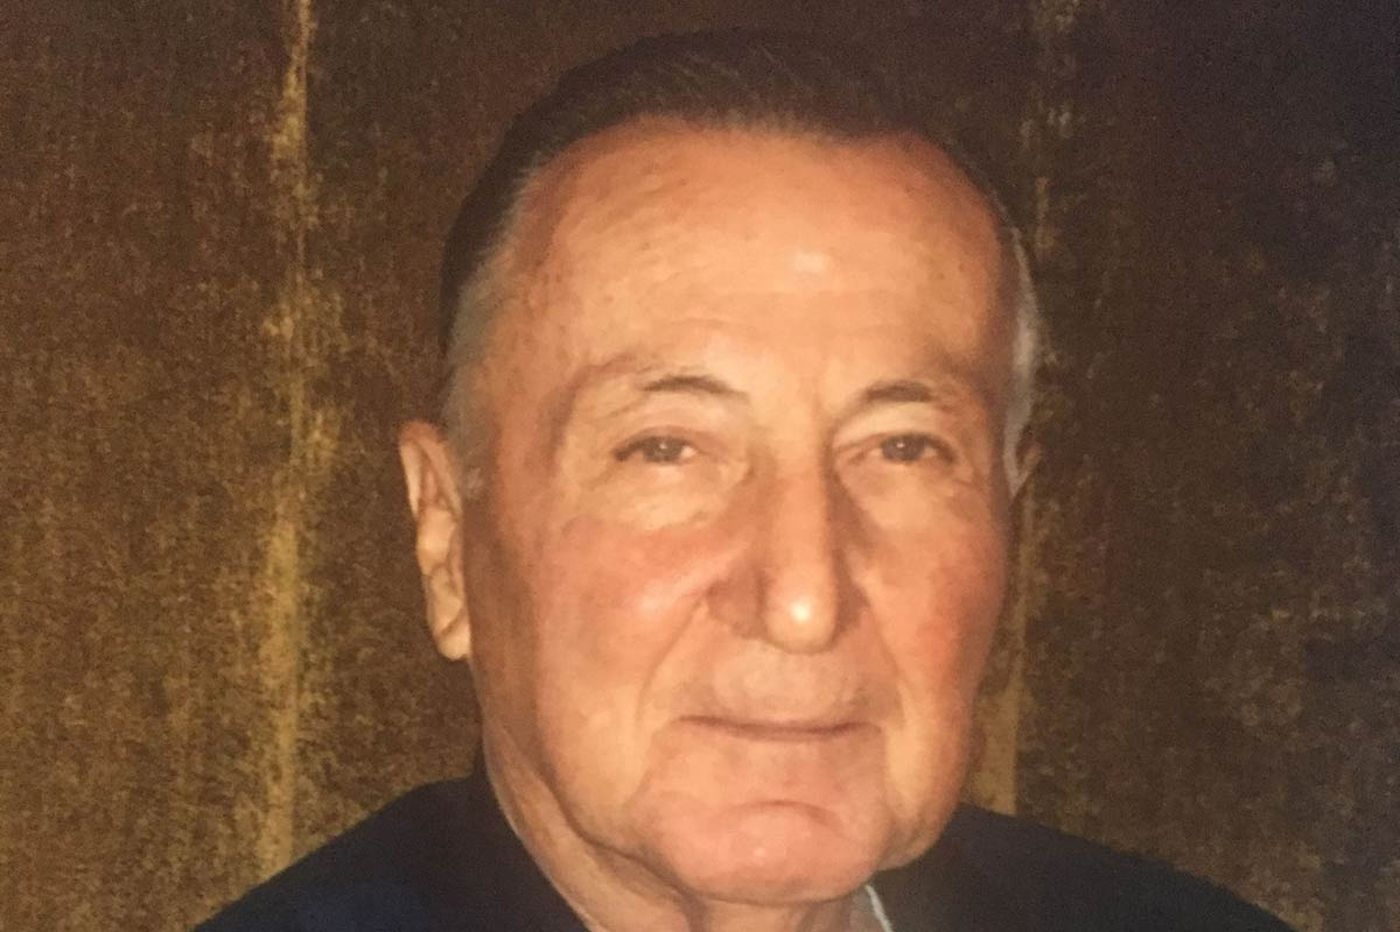 Why N.J. troopers went to wrong home, shot a 76-year-old